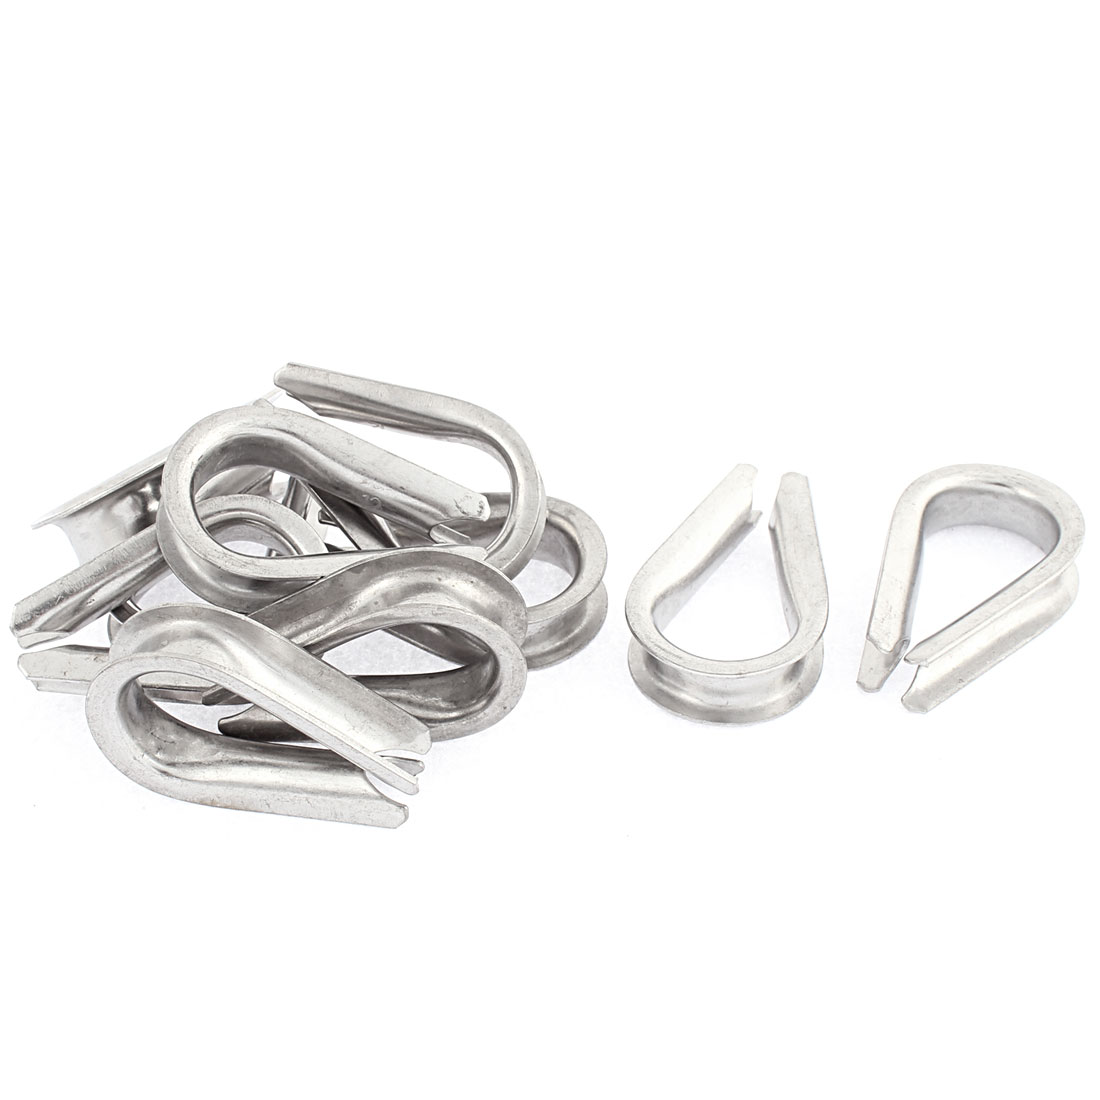 12mm Standard Wire Rope Cable Thimbles Rigging Lifting Gear 10pcs